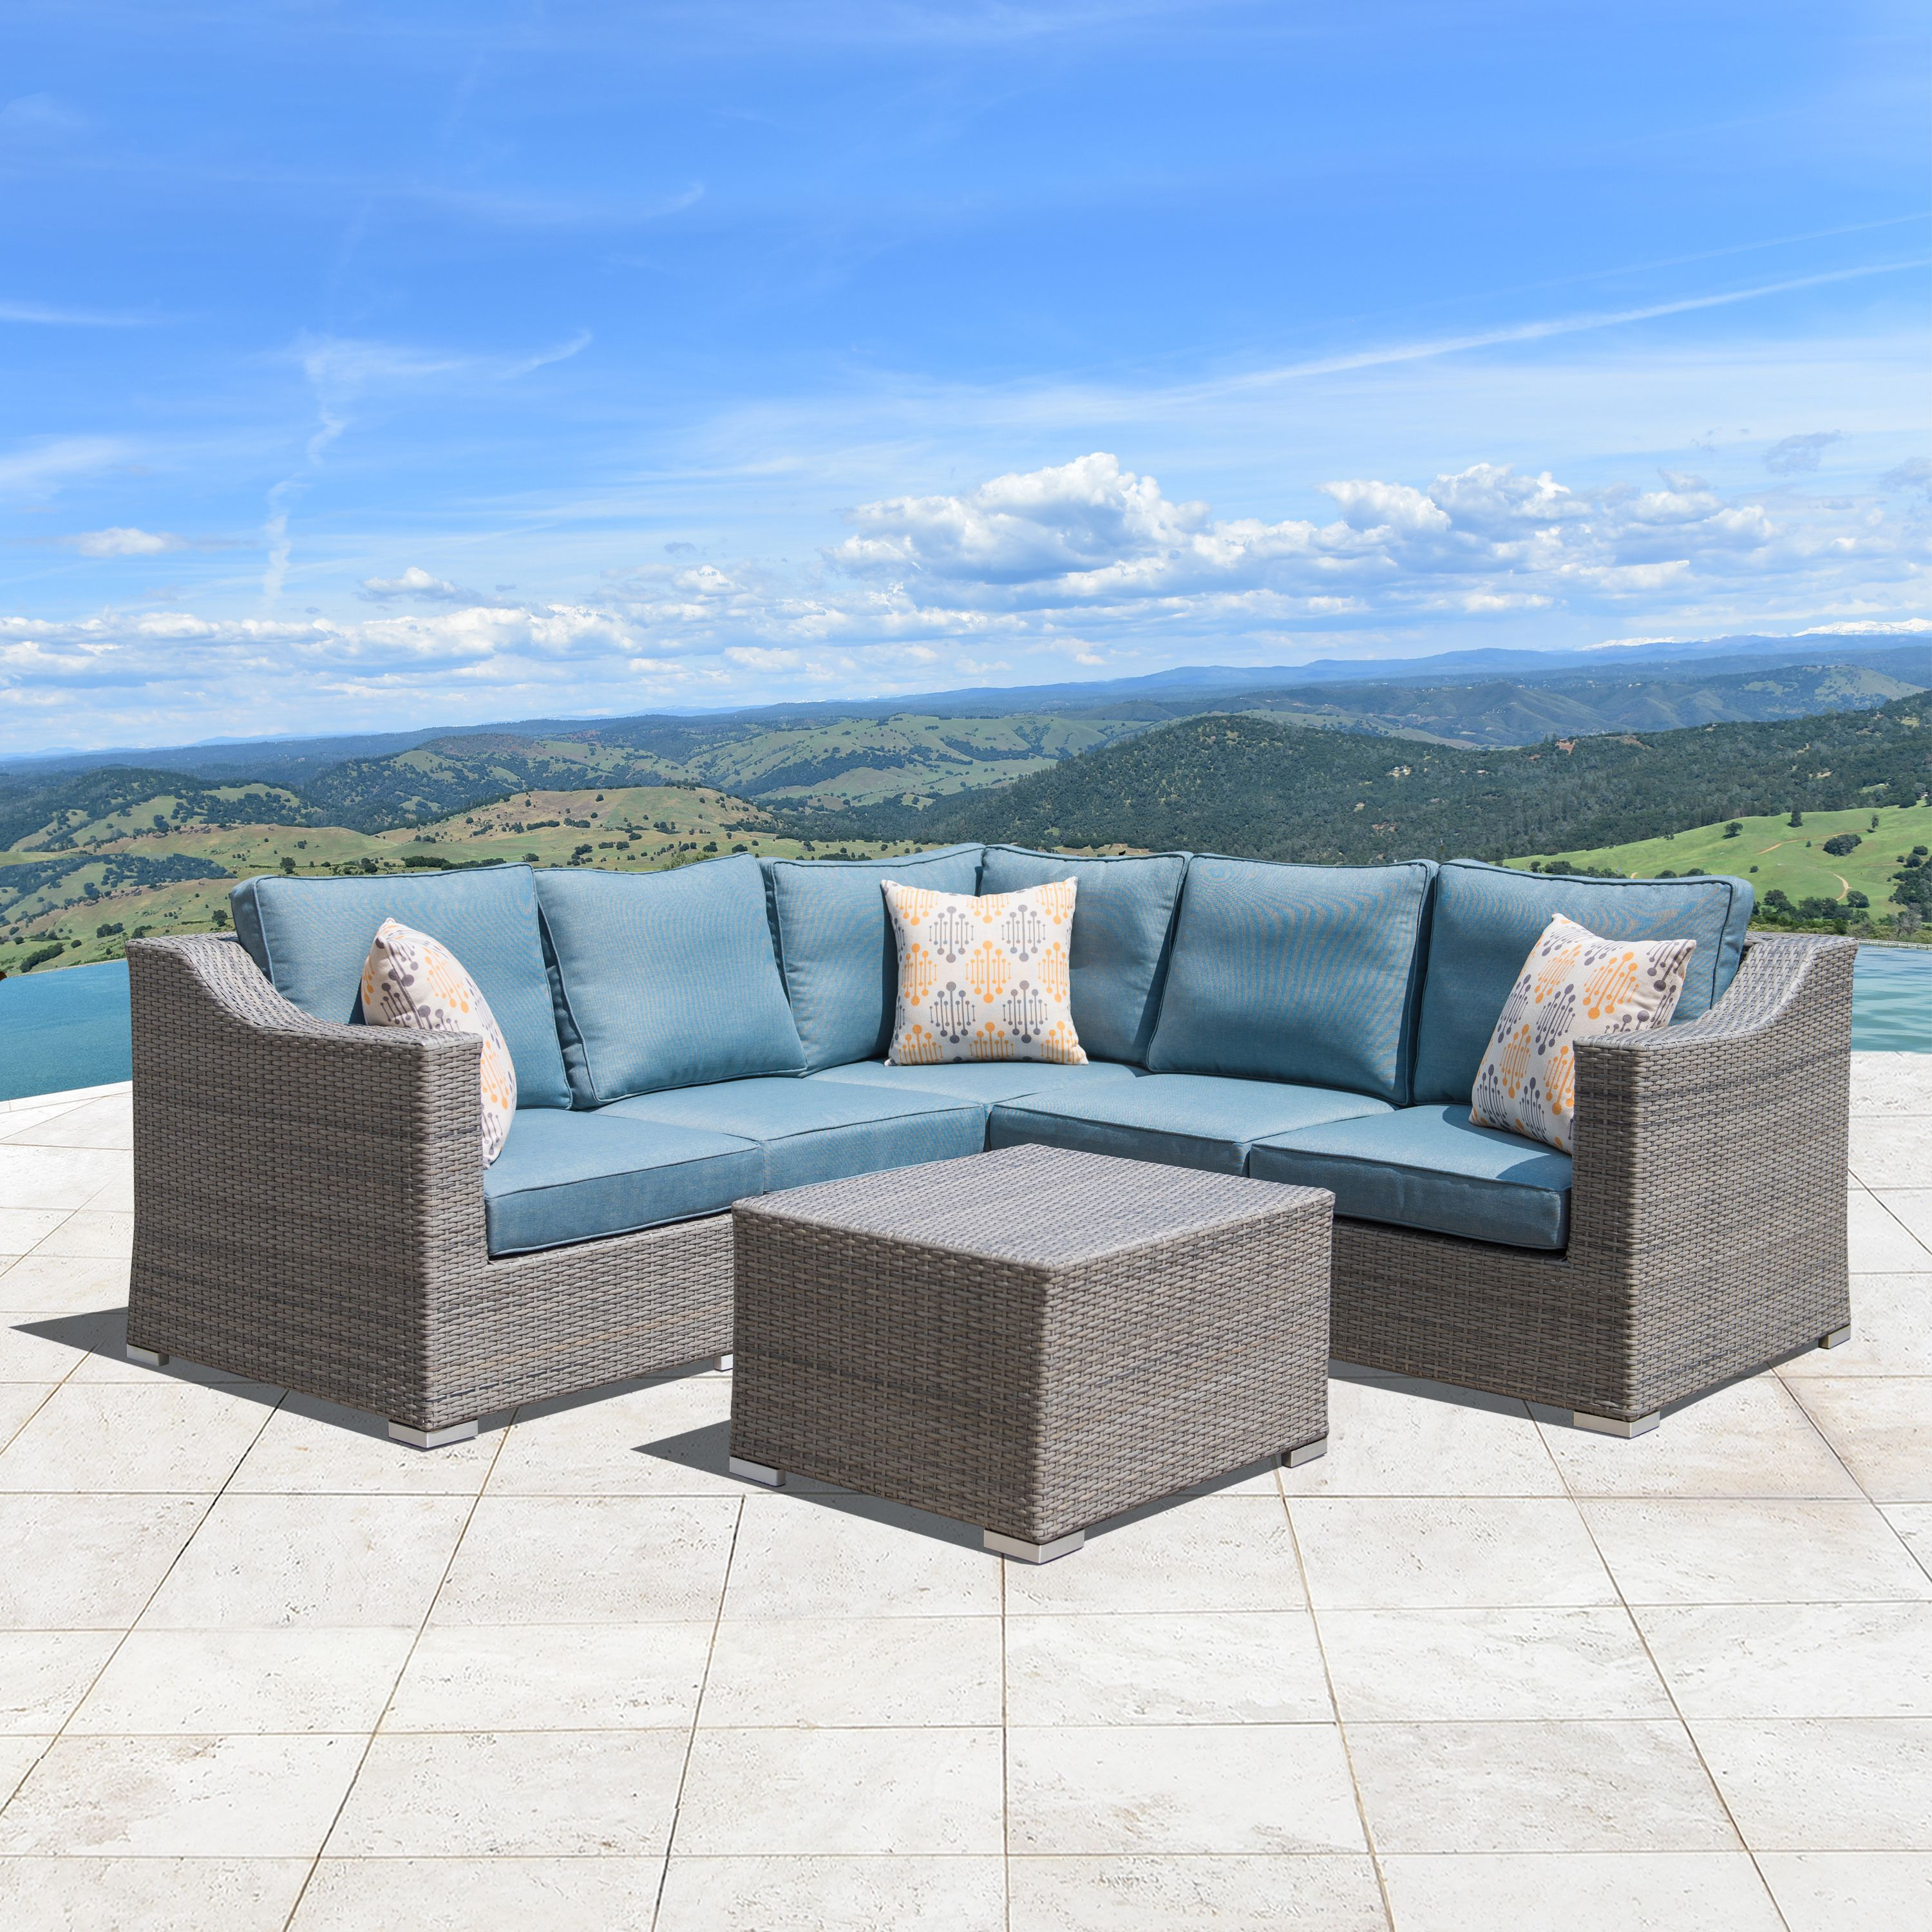 oxford relax club beautiful furniture sets the piece with of new biglotspatiofurniture garden bistro chat belvedere patio set